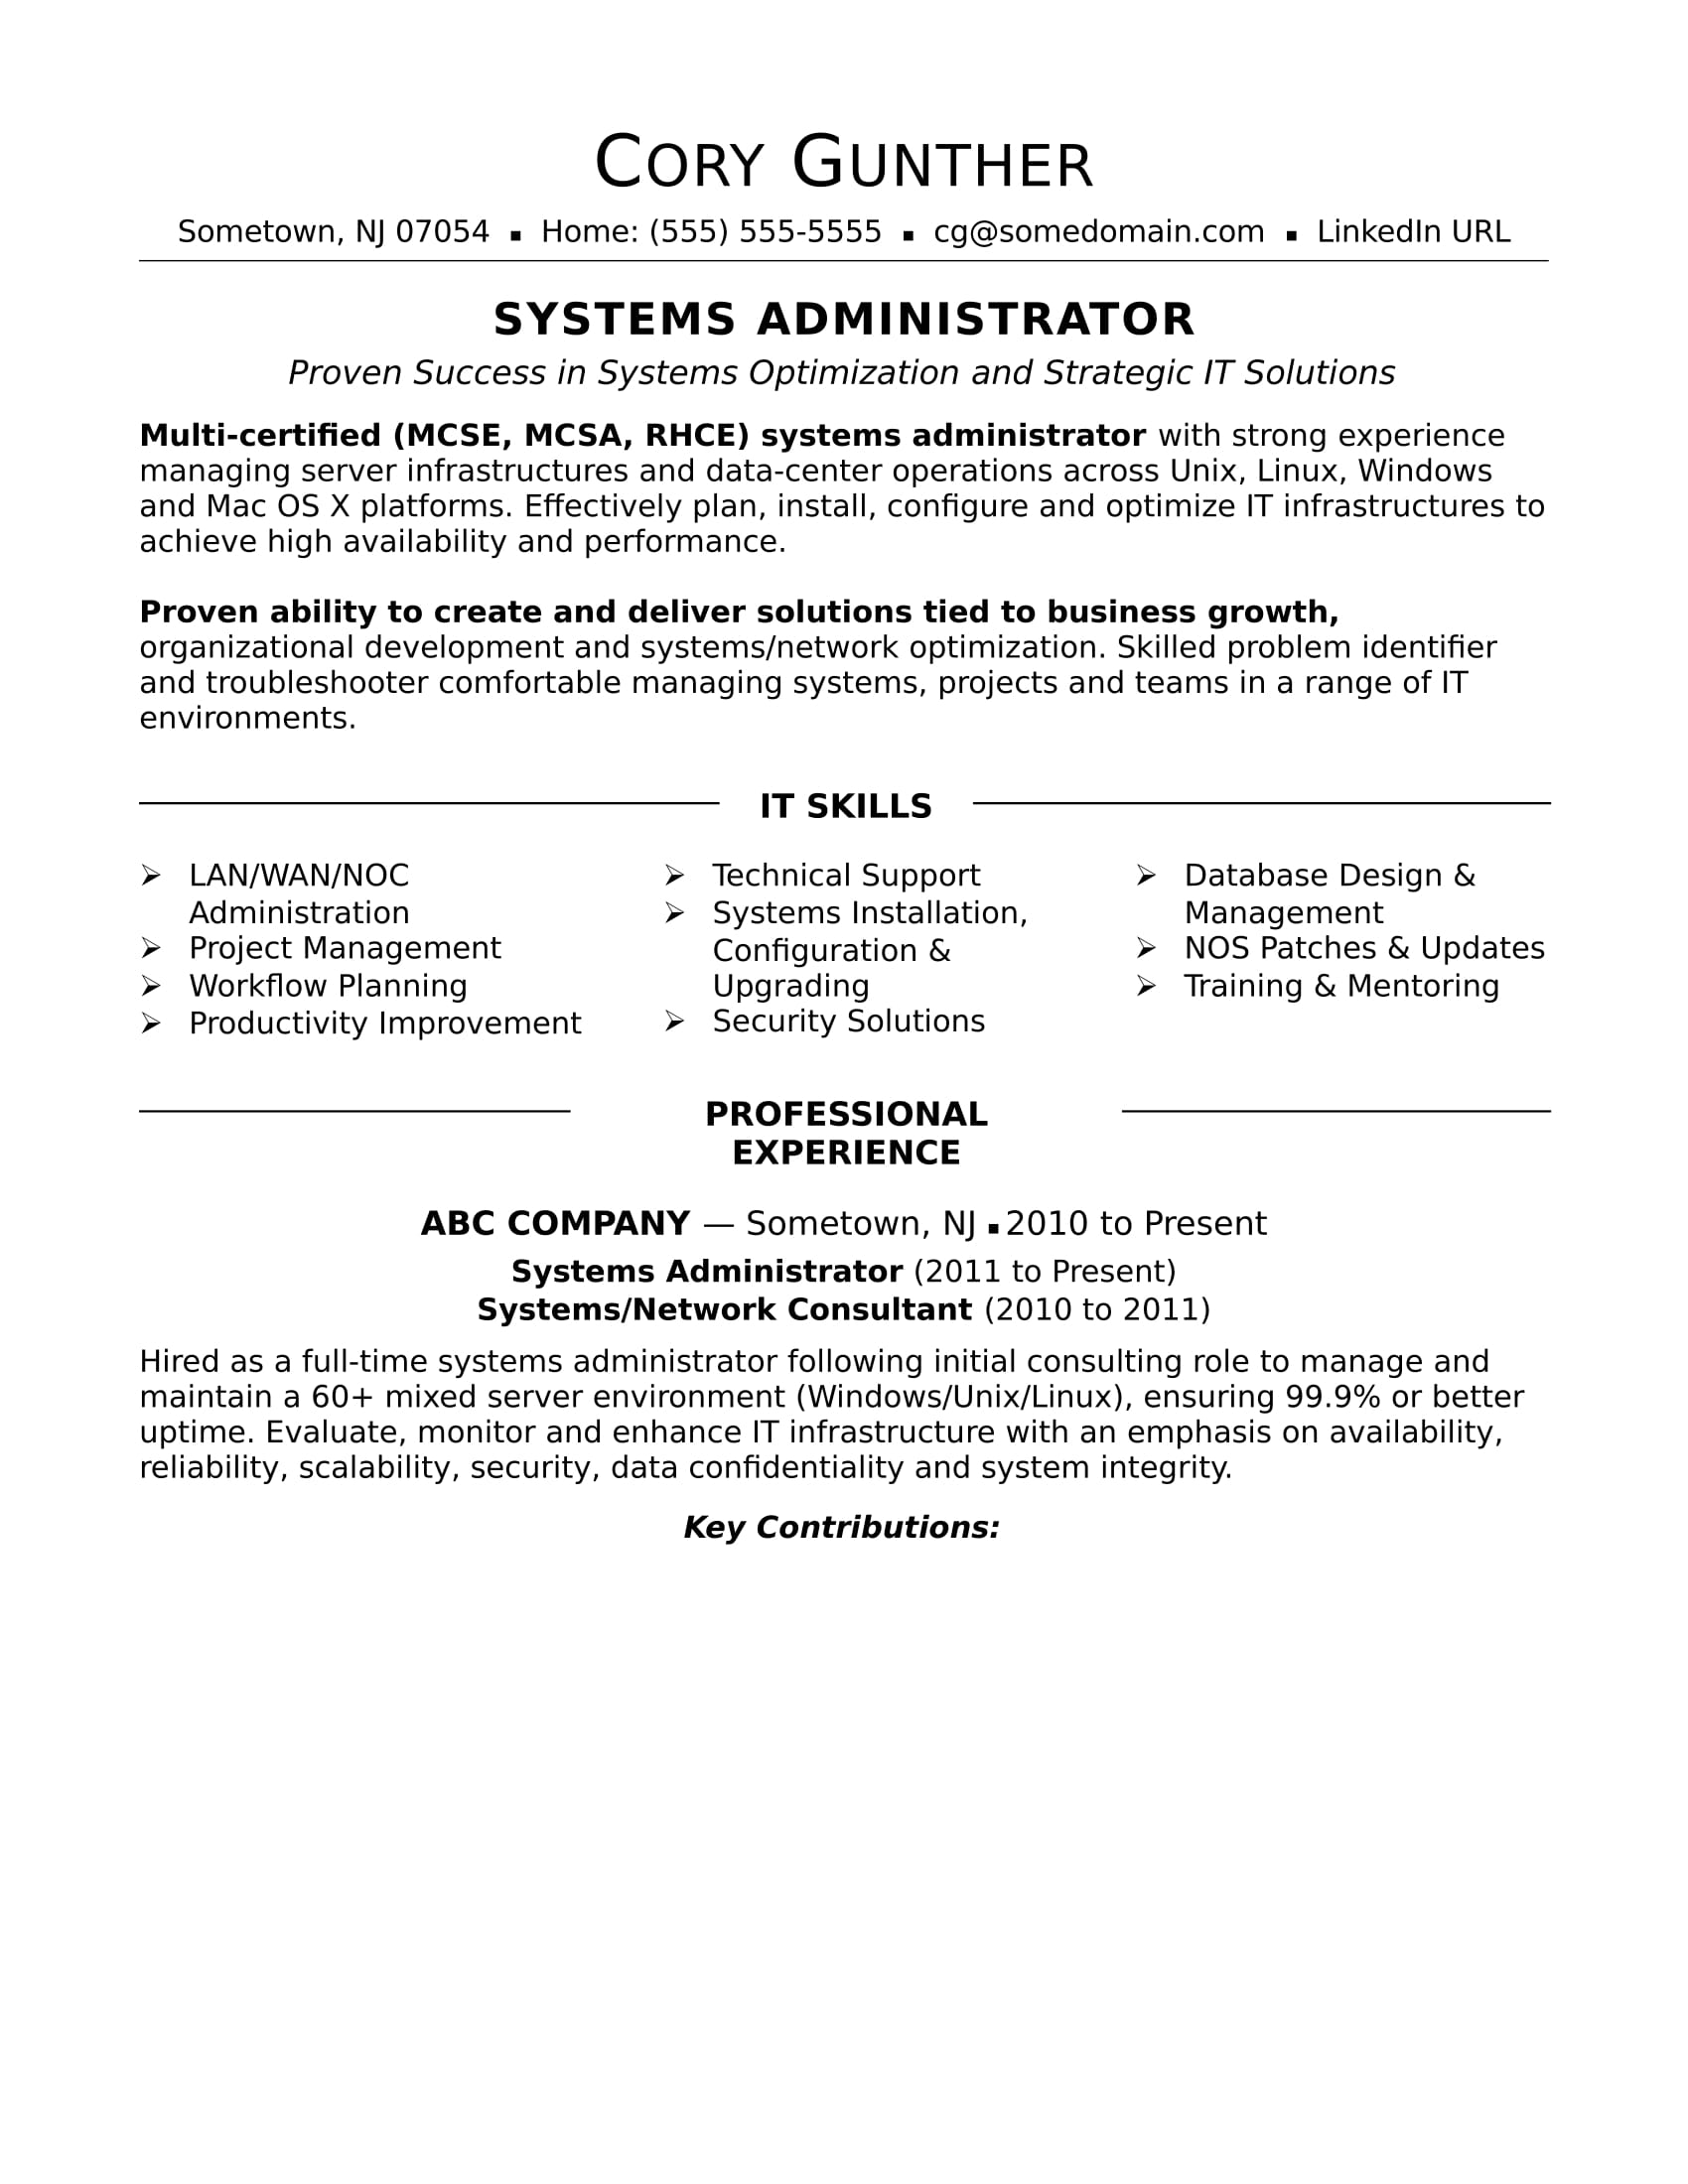 Sample Resume For An Experienced Systems Administrator  Business Skills For Resume